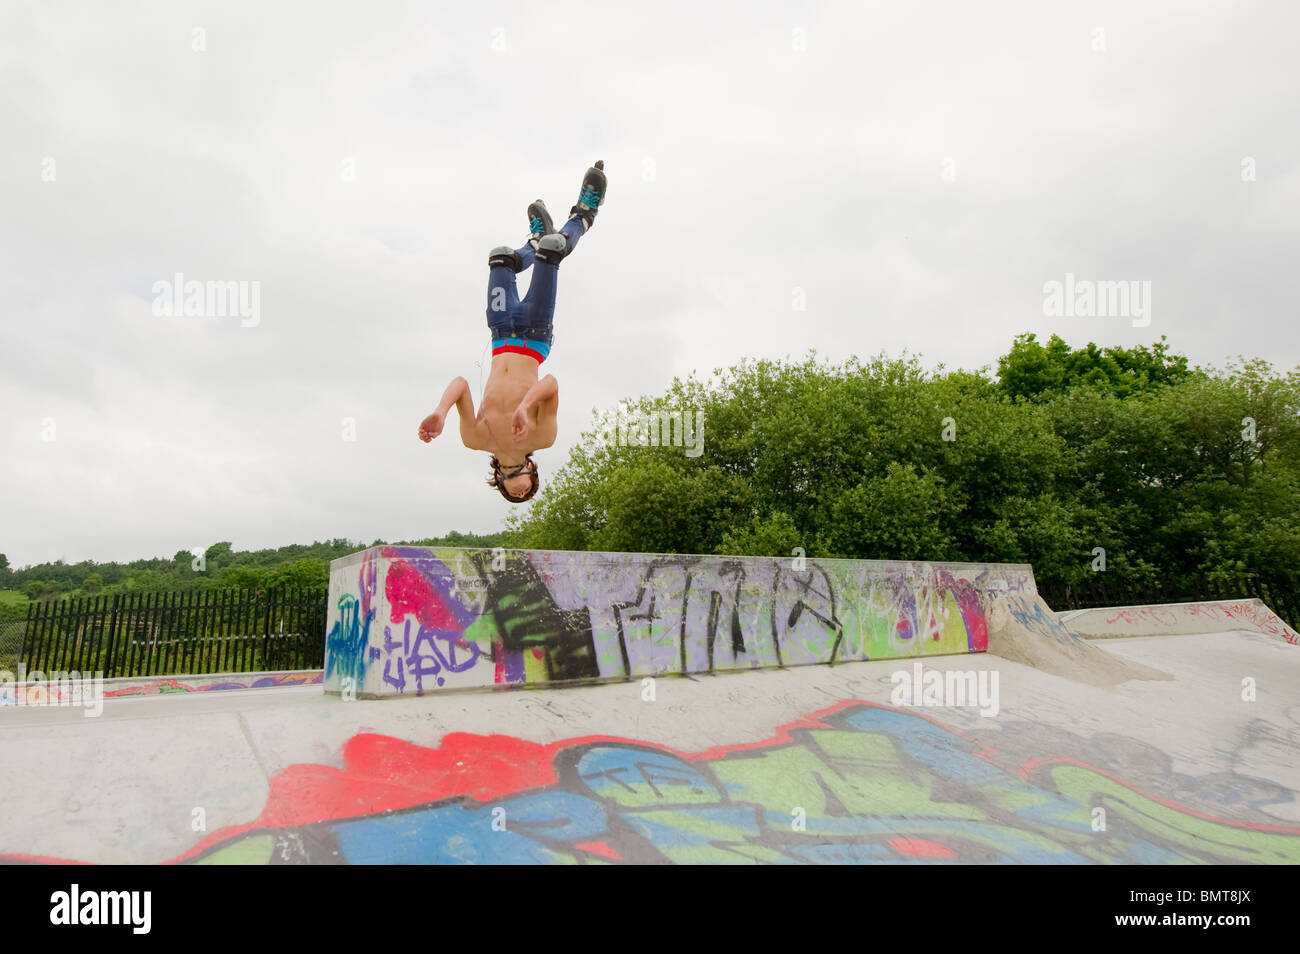 Inline-Skater in Aktion bei speziell dafür gebauten Skatepark in Leigh on Sea, Essex, England. Stockbild